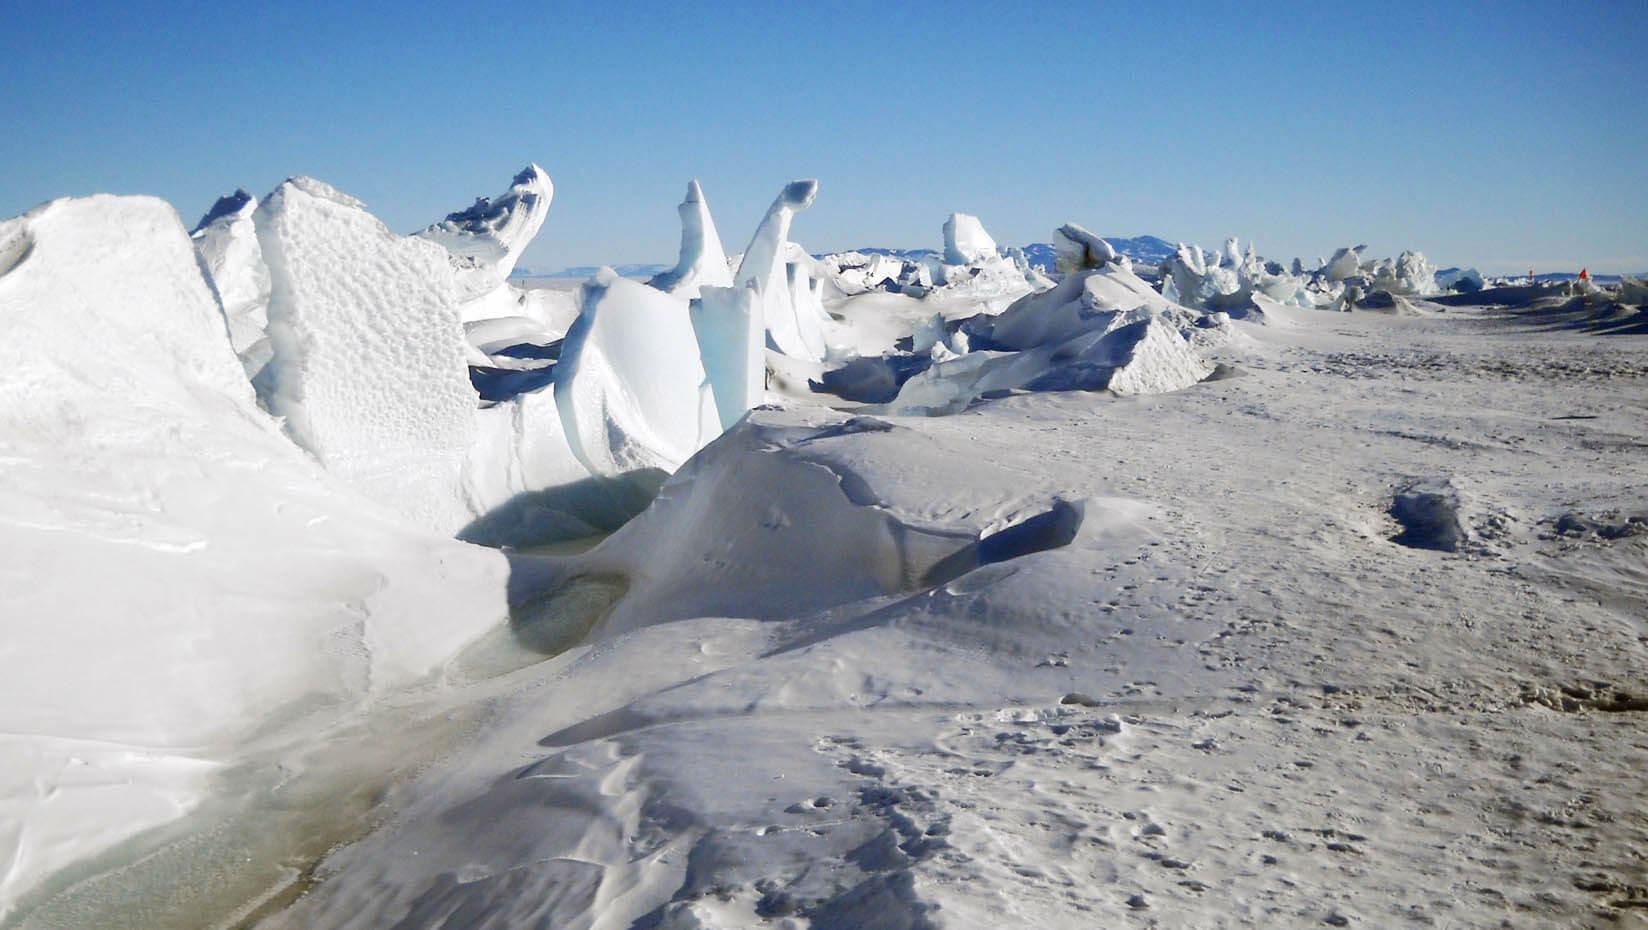 Study Sheds More Light on Overall Sea Ice Changes in Southern Hemisphere